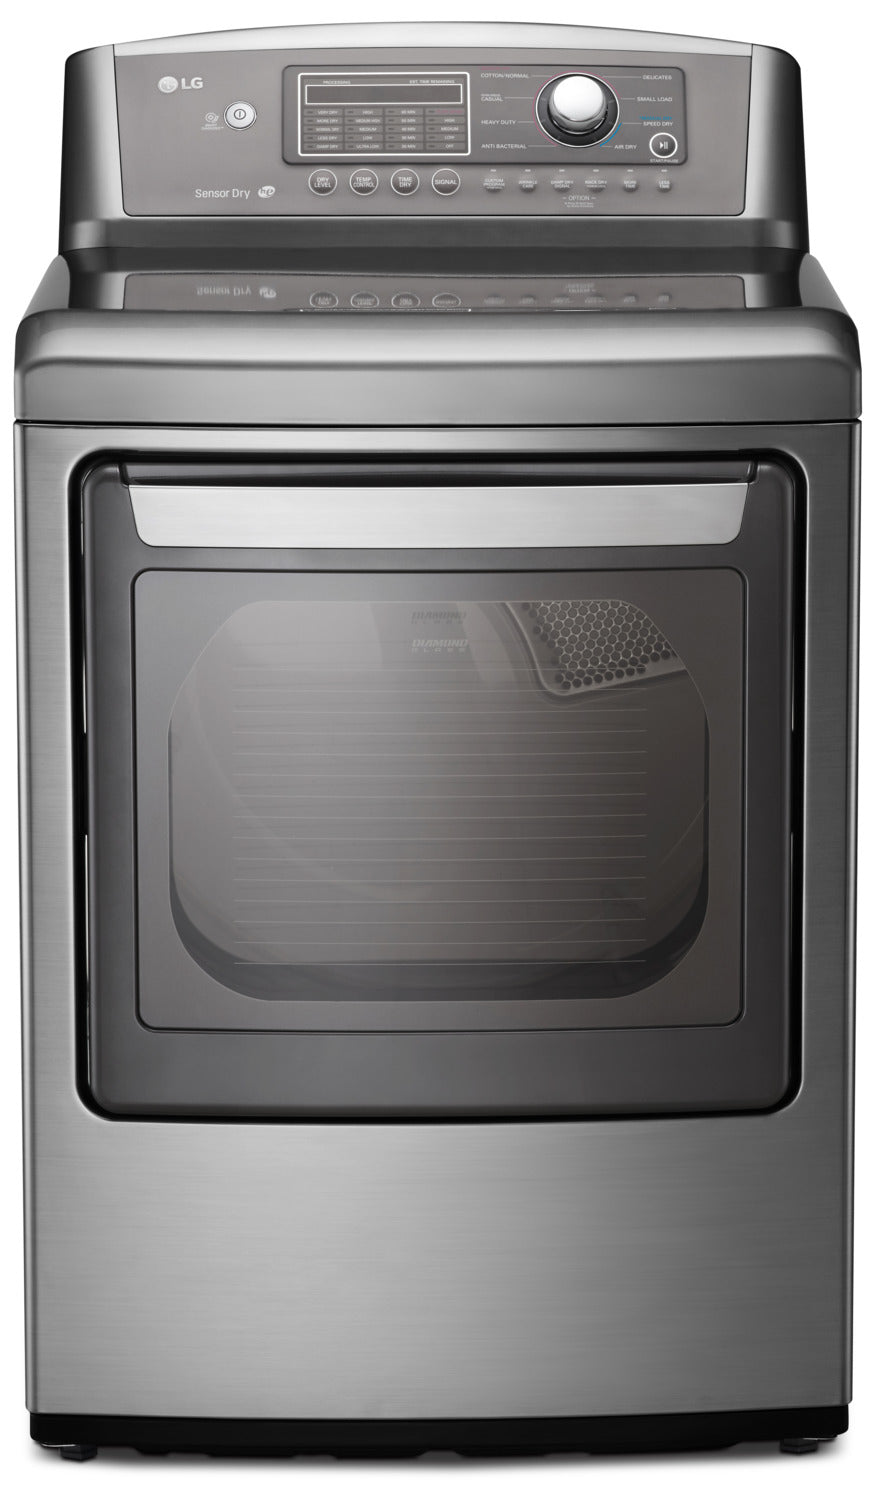 LG 7 3 Cu  Ft  Electric Dryer with Sensor Dry and SmartDiagnosis™ -  Graphite Steel